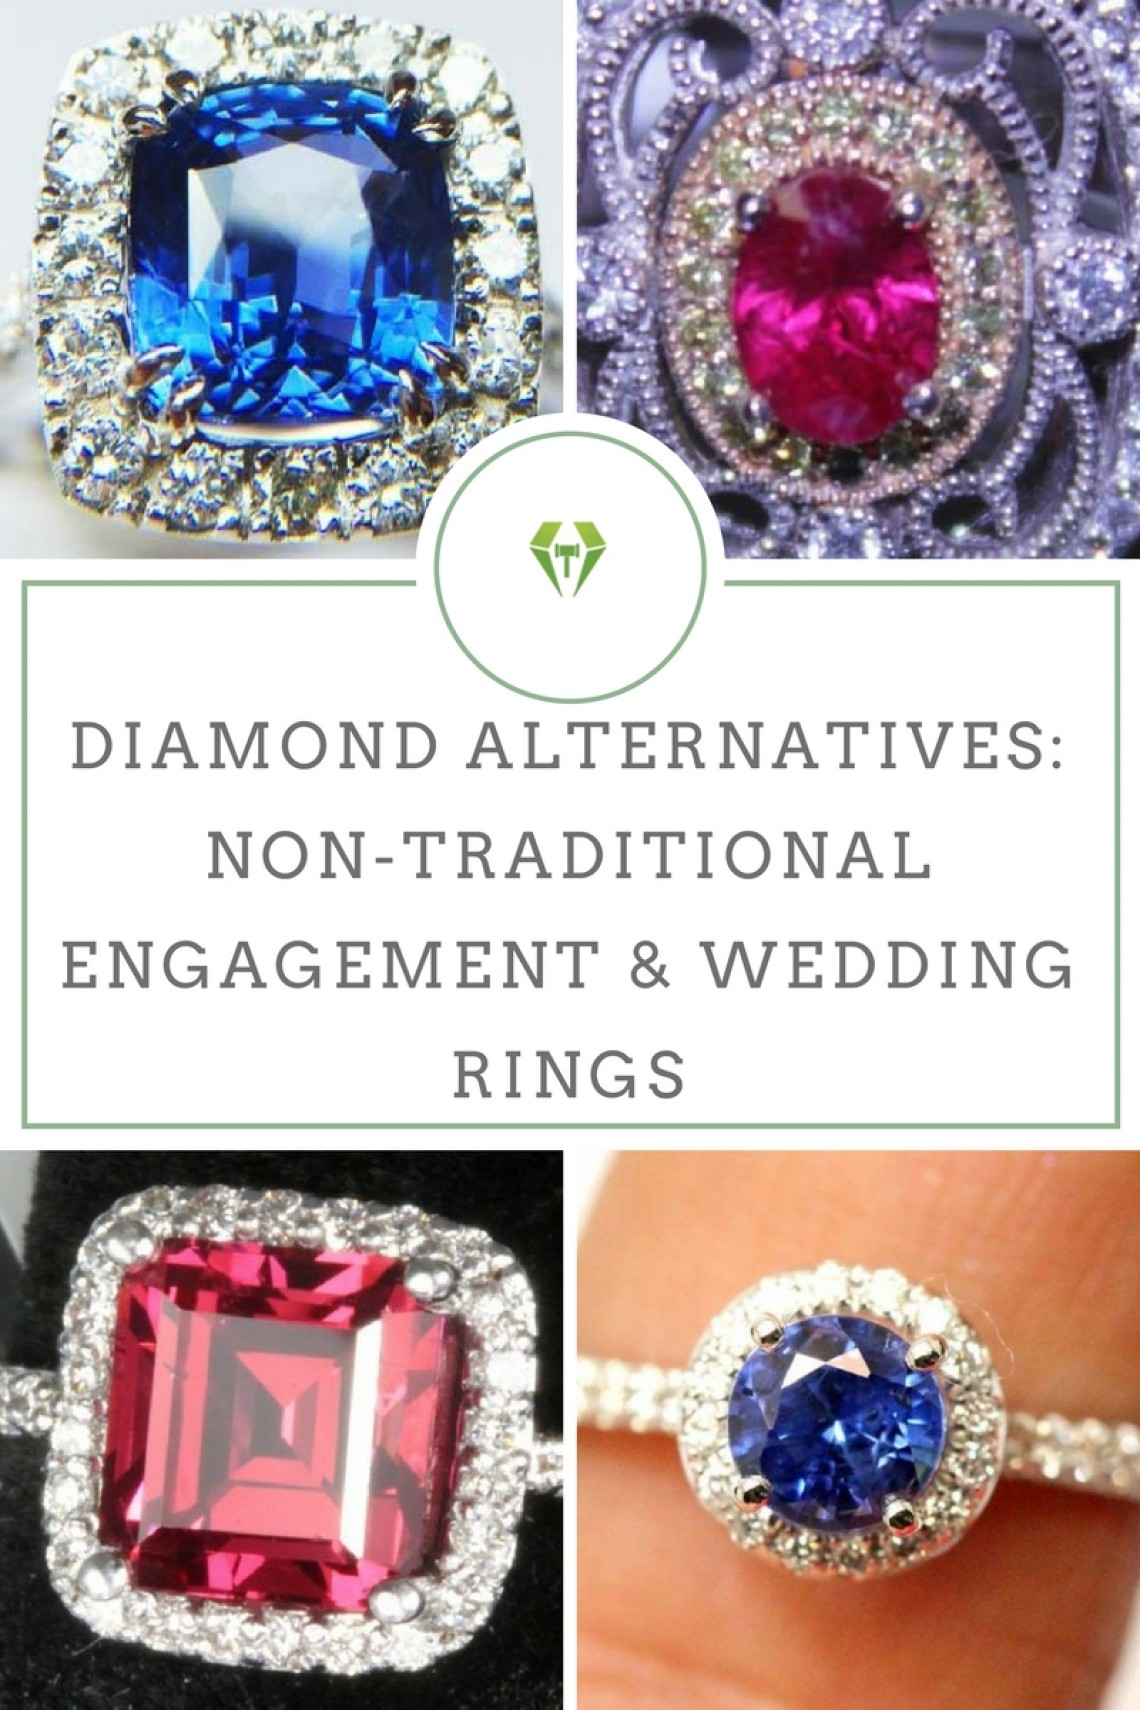 comments r what look engagement askwomen ring com rings your nontraditional non i does diamond ladies nondiamond imgur with